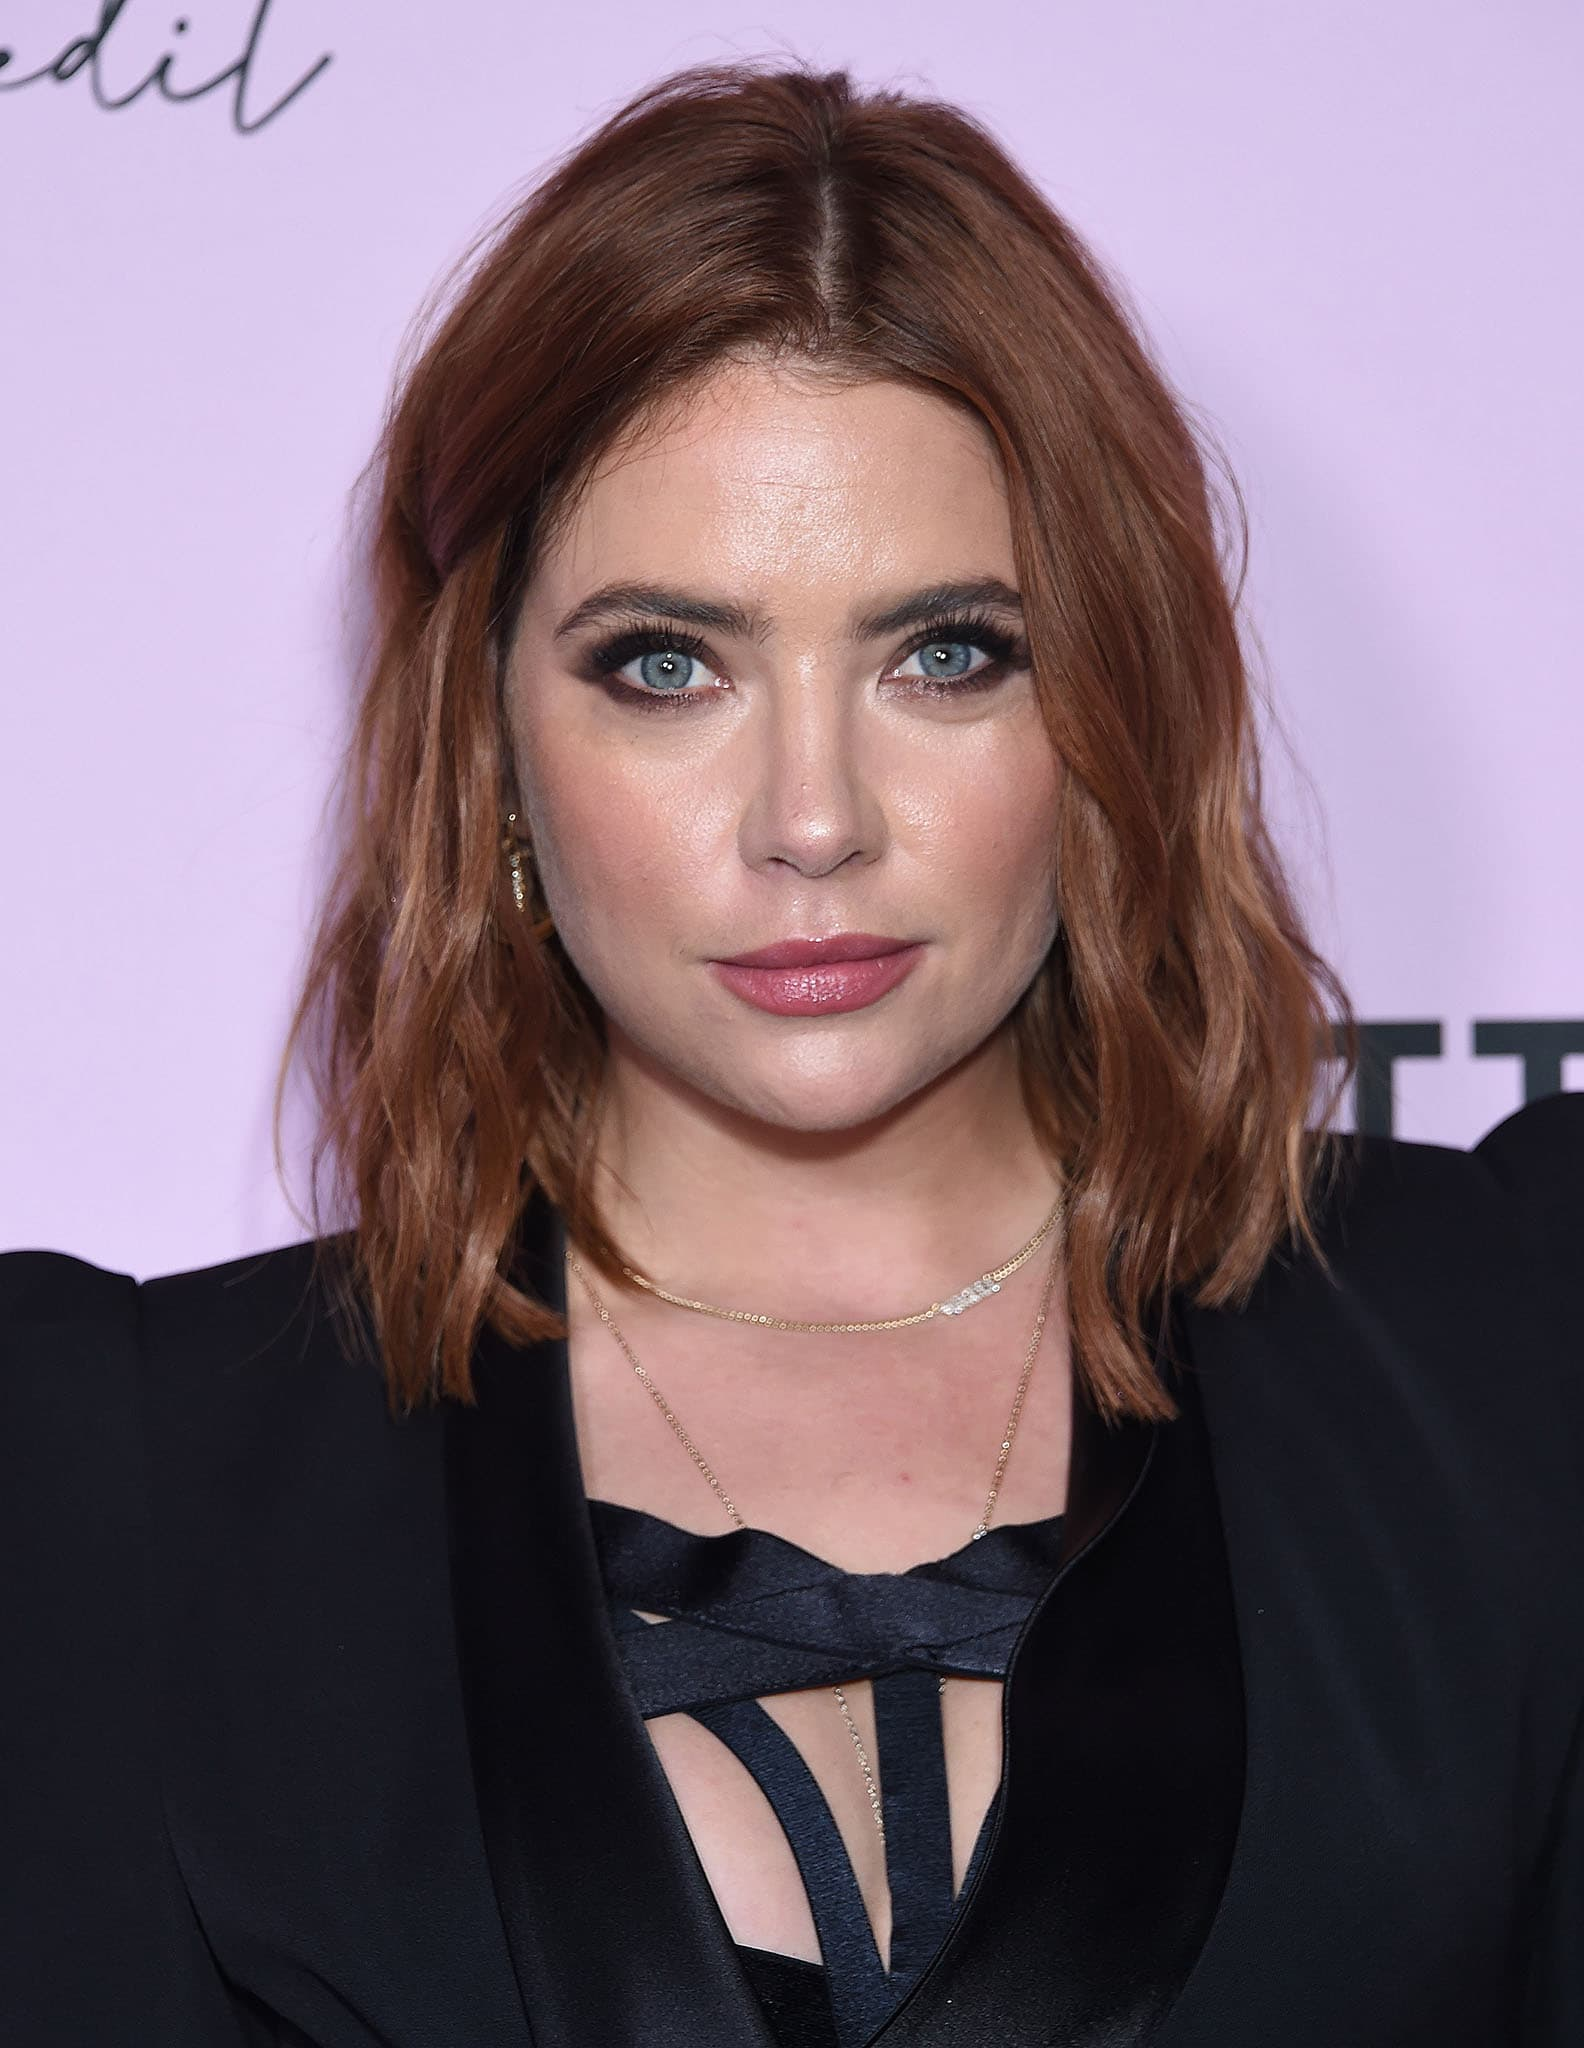 Ashley Benson wears her red hair in tousled waves with kohl-rimmed eyes and pink lipstick